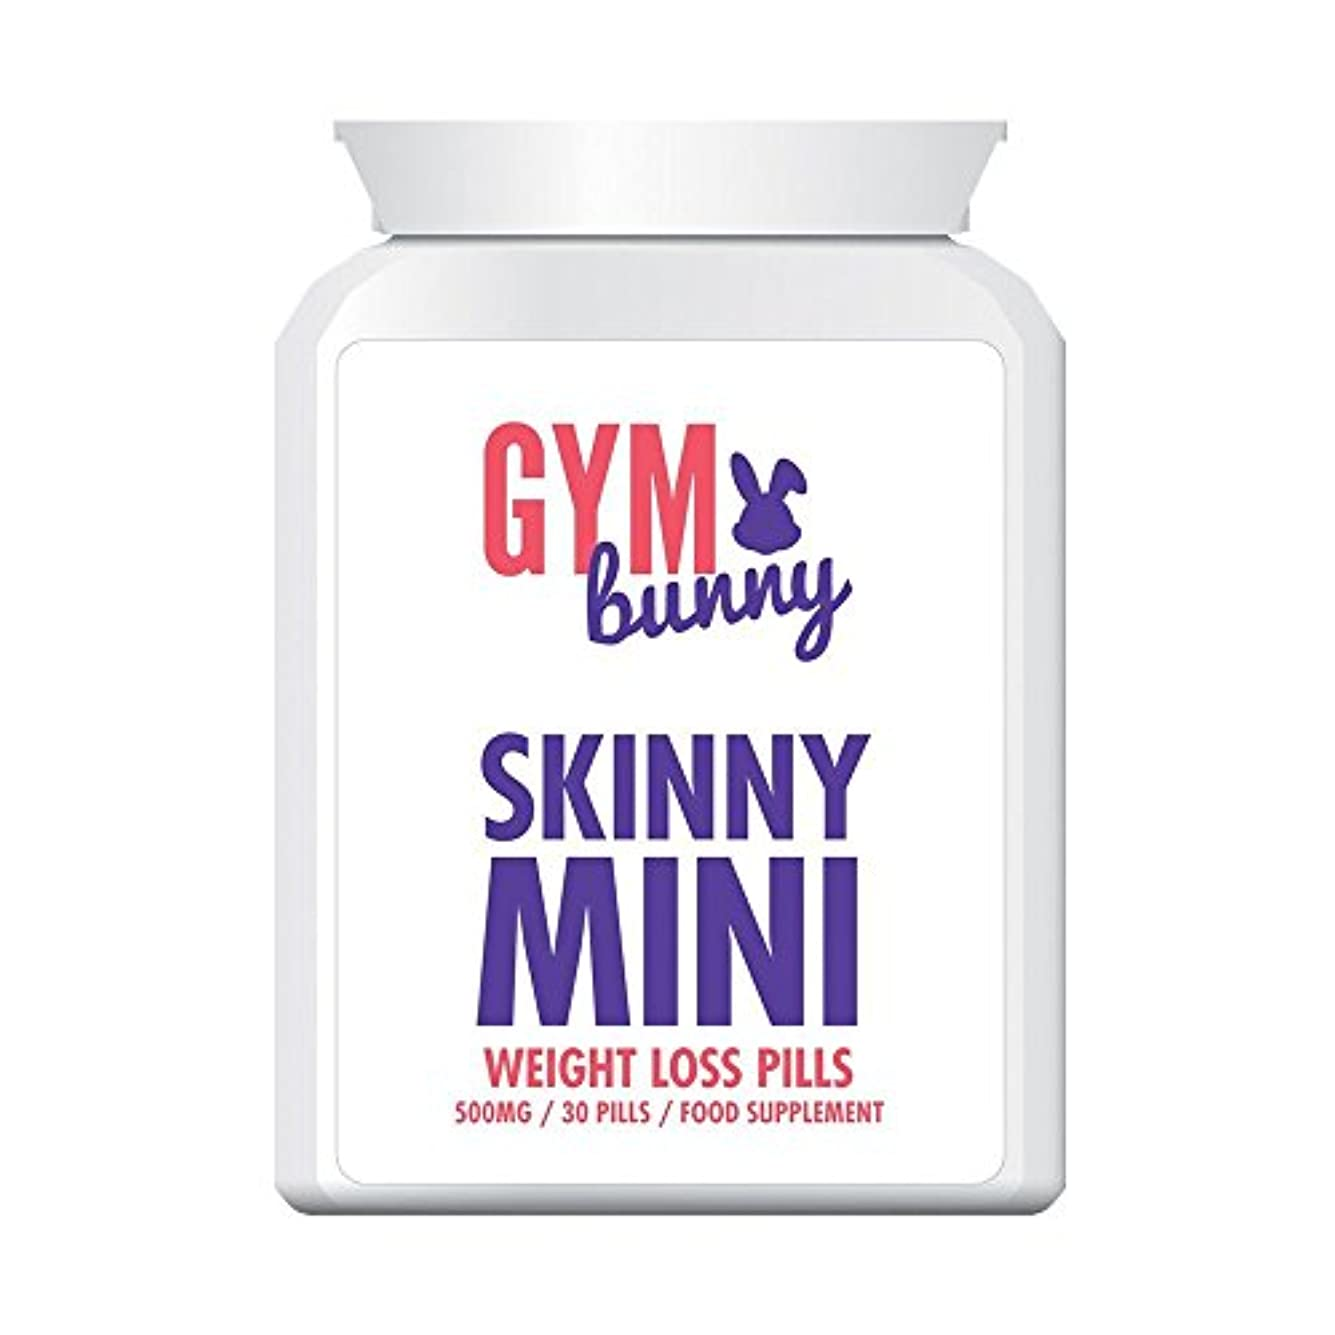 以来項目口径GYM BUNNY SKINNY MINI WEIGHT LOSS PILLS減量の丸薬 - ダイエット錠剤は、体重、体脂肪がFAST LOSE Jimu BUNNY SKINNY mini genryō no gan'yaku...